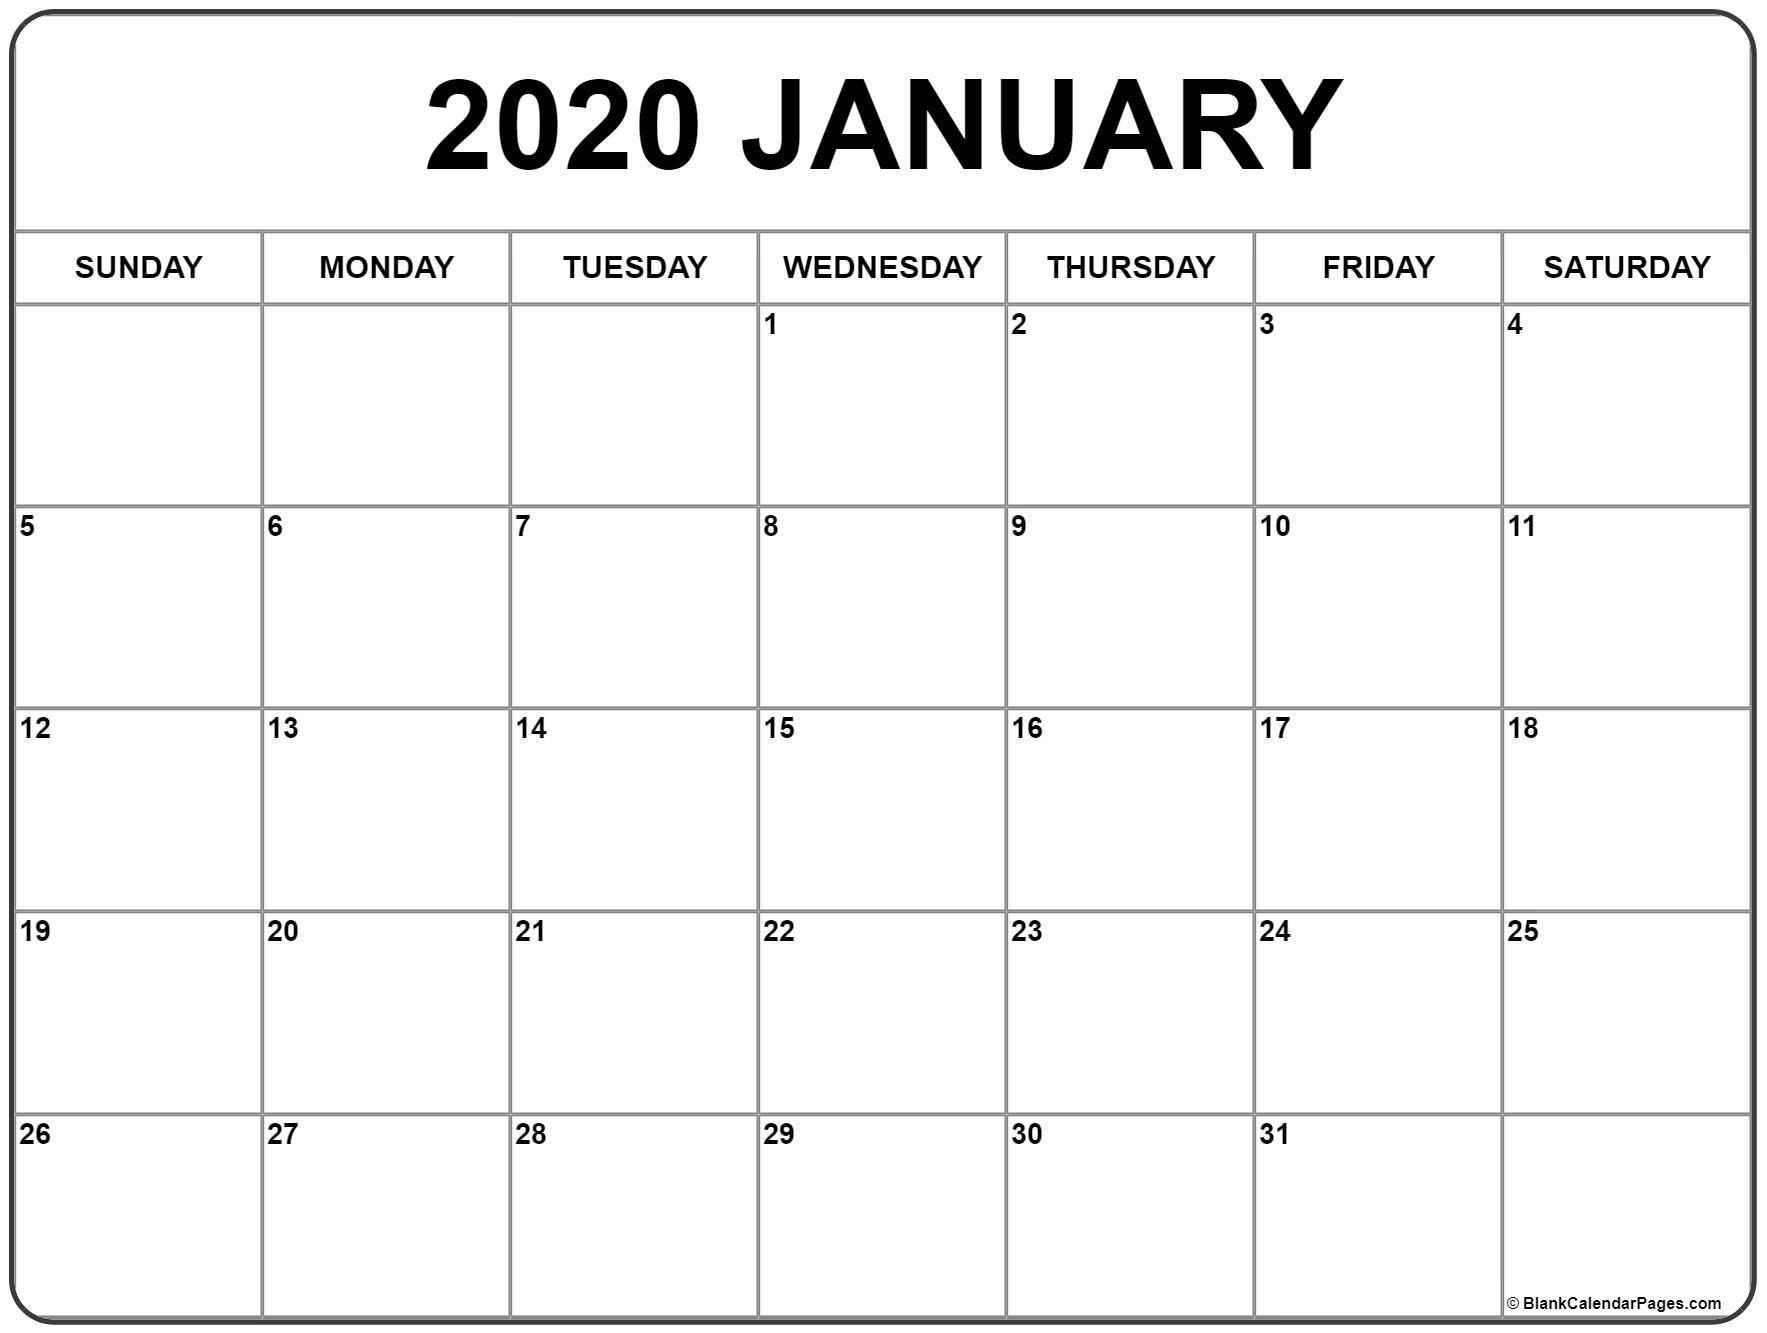 January 2020 Calendar | Free Printable Monthly Calendars-Printable Calendar Of January 2020